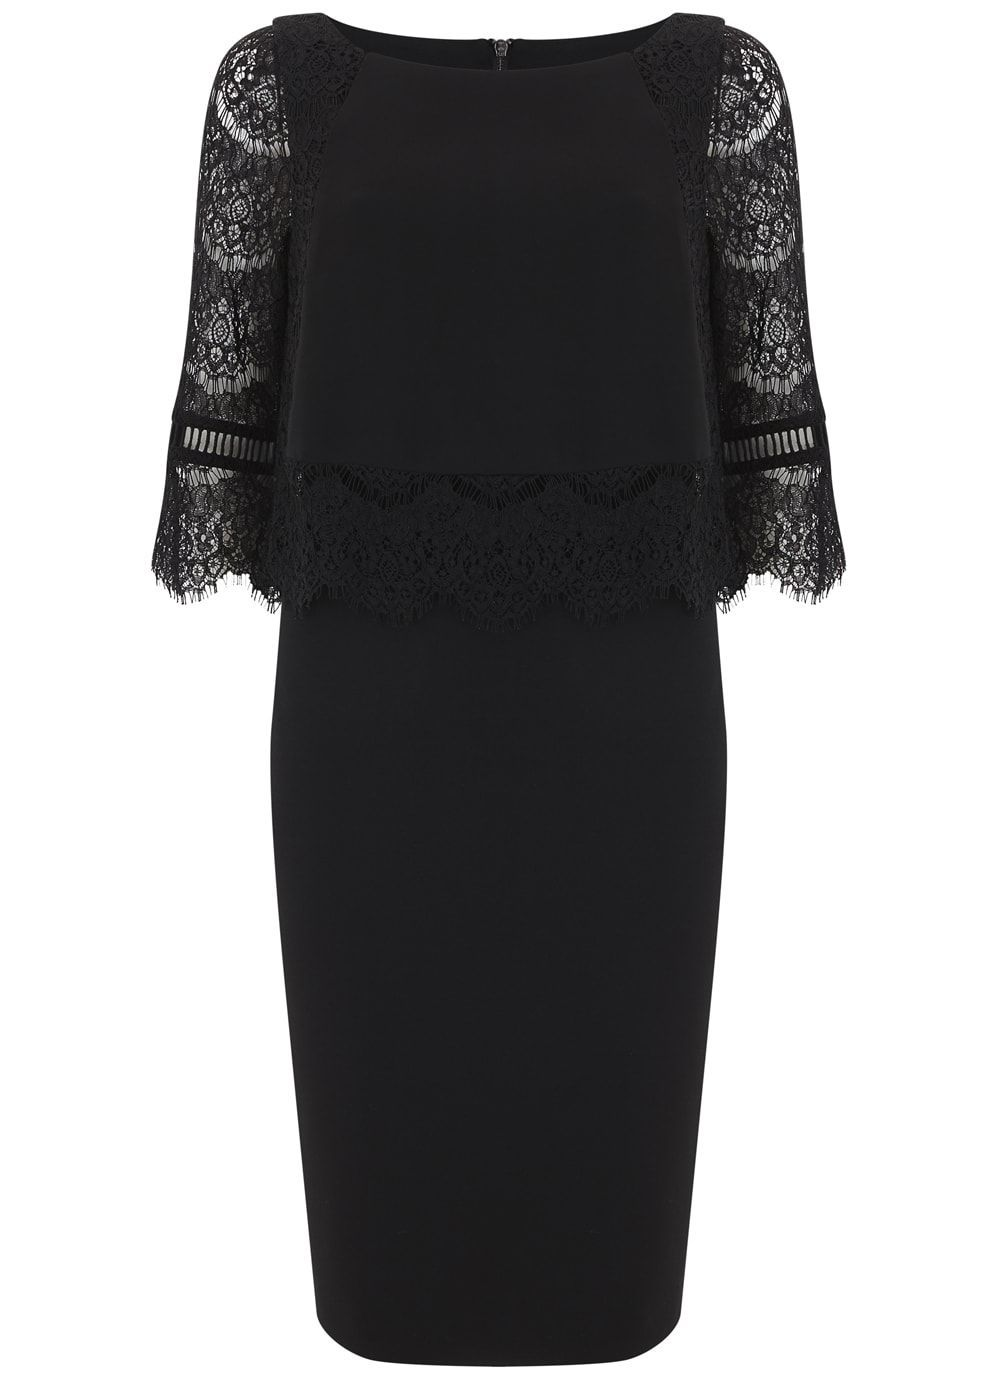 Black Lace Layered Dress, Black - style: shift; neckline: slash/boat neckline; fit: tailored/fitted; pattern: plain; predominant colour: black; occasions: evening, occasion; length: on the knee; fibres: polyester/polyamide - 100%; sleeve length: 3/4 length; sleeve style: standard; texture group: crepes; pattern type: fabric; embellishment: lace; shoulder detail: sheer at shoulder; season: a/w 2016; wardrobe: event